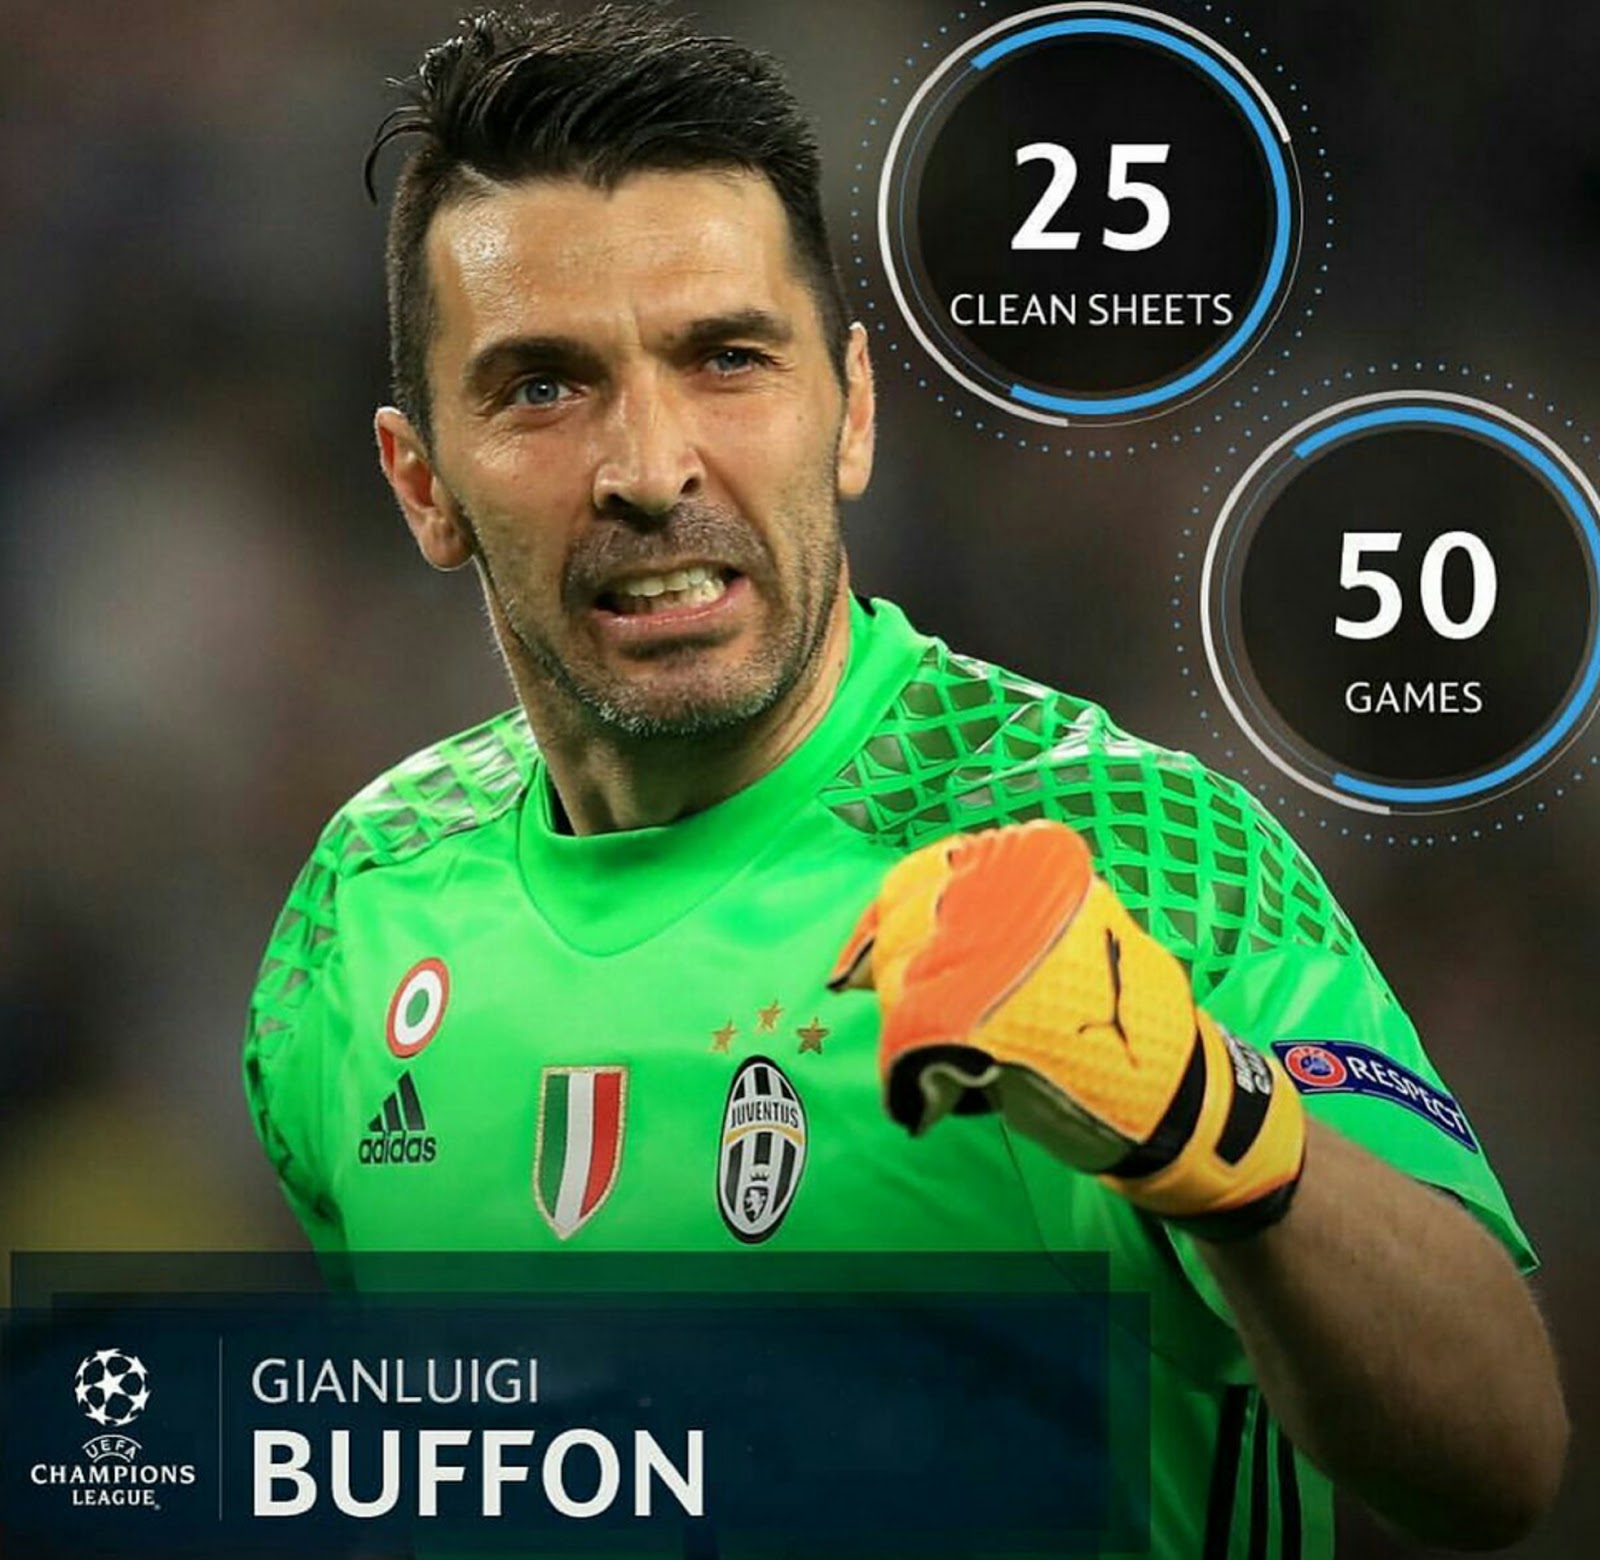 GIANLUIGI BUFFON 8